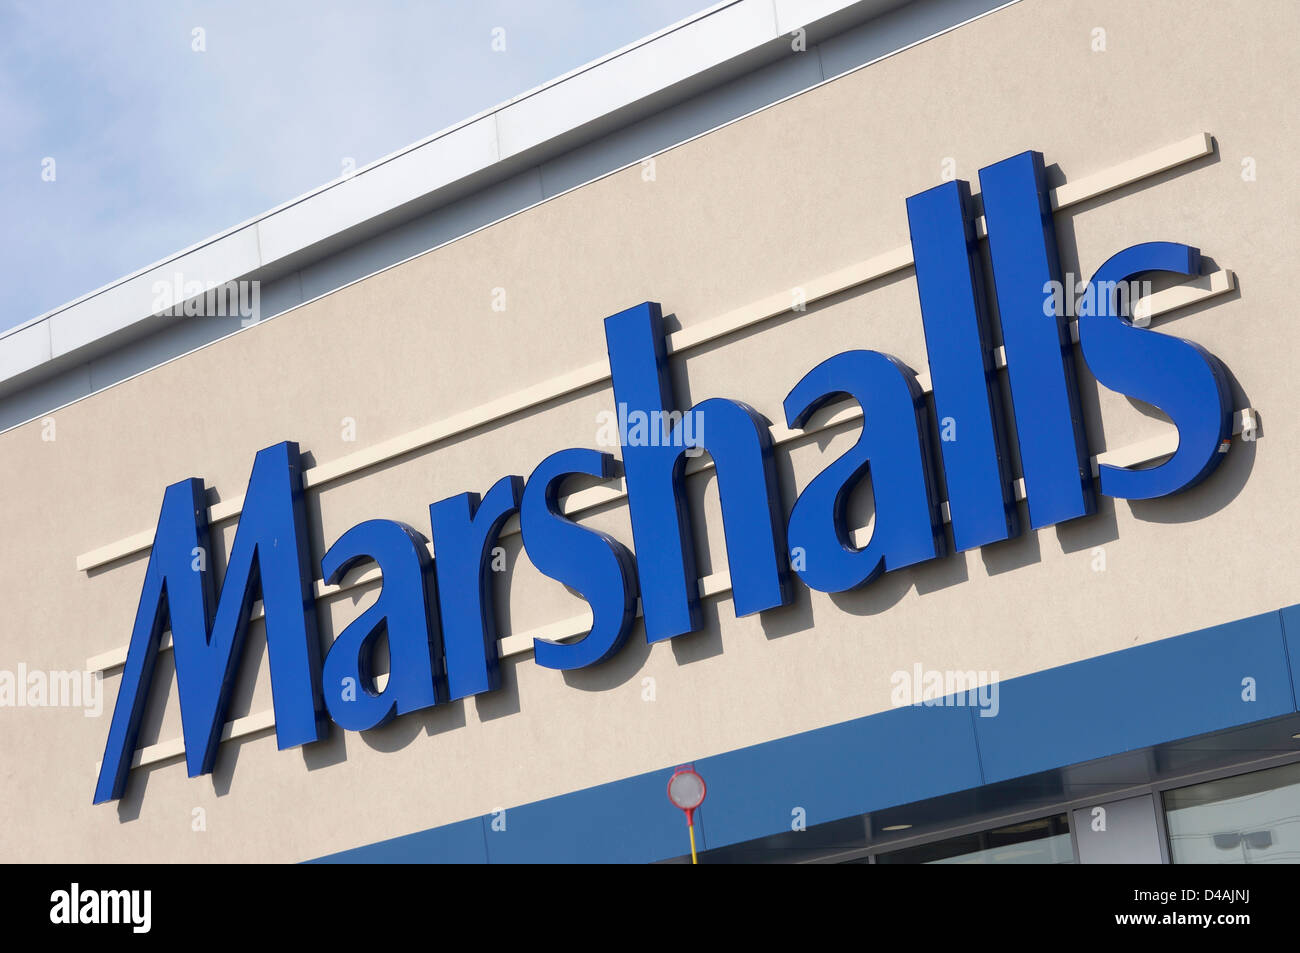 Marshalls - Stock Image